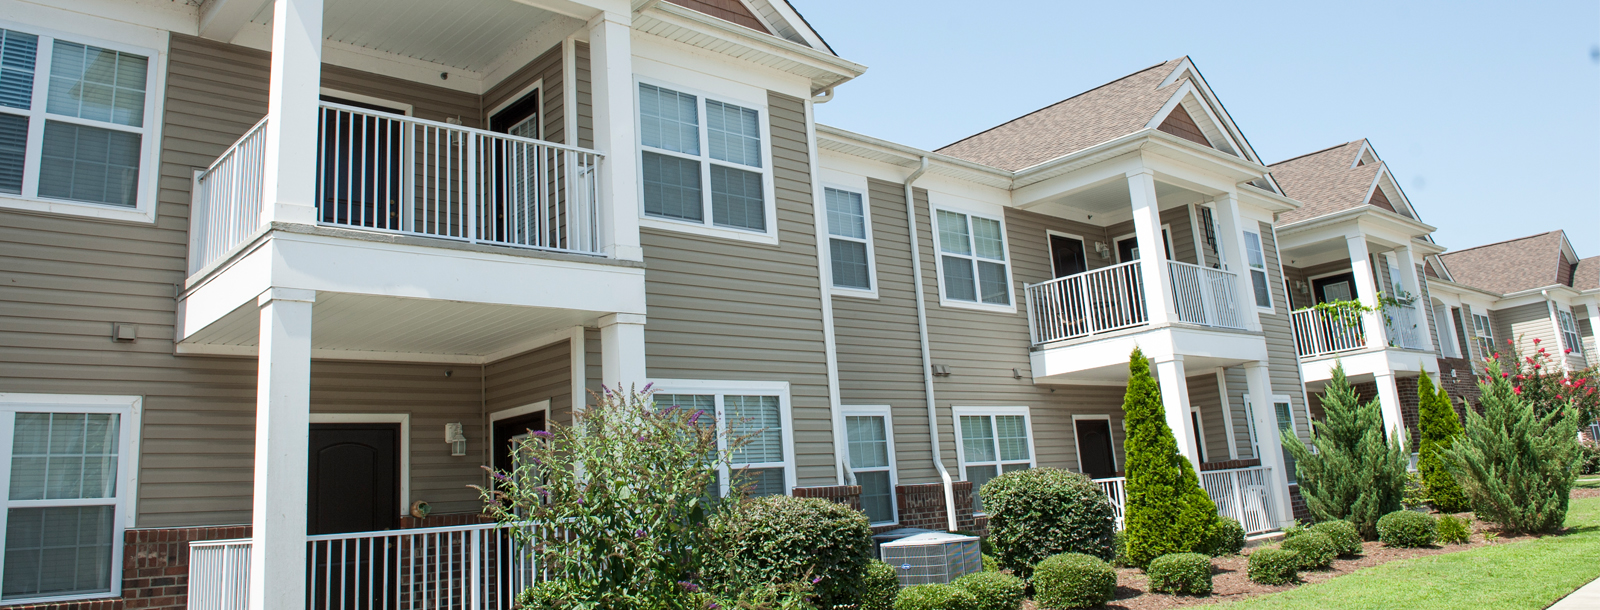 One Bedroom Apartments For Rent In Fayetteville Ar